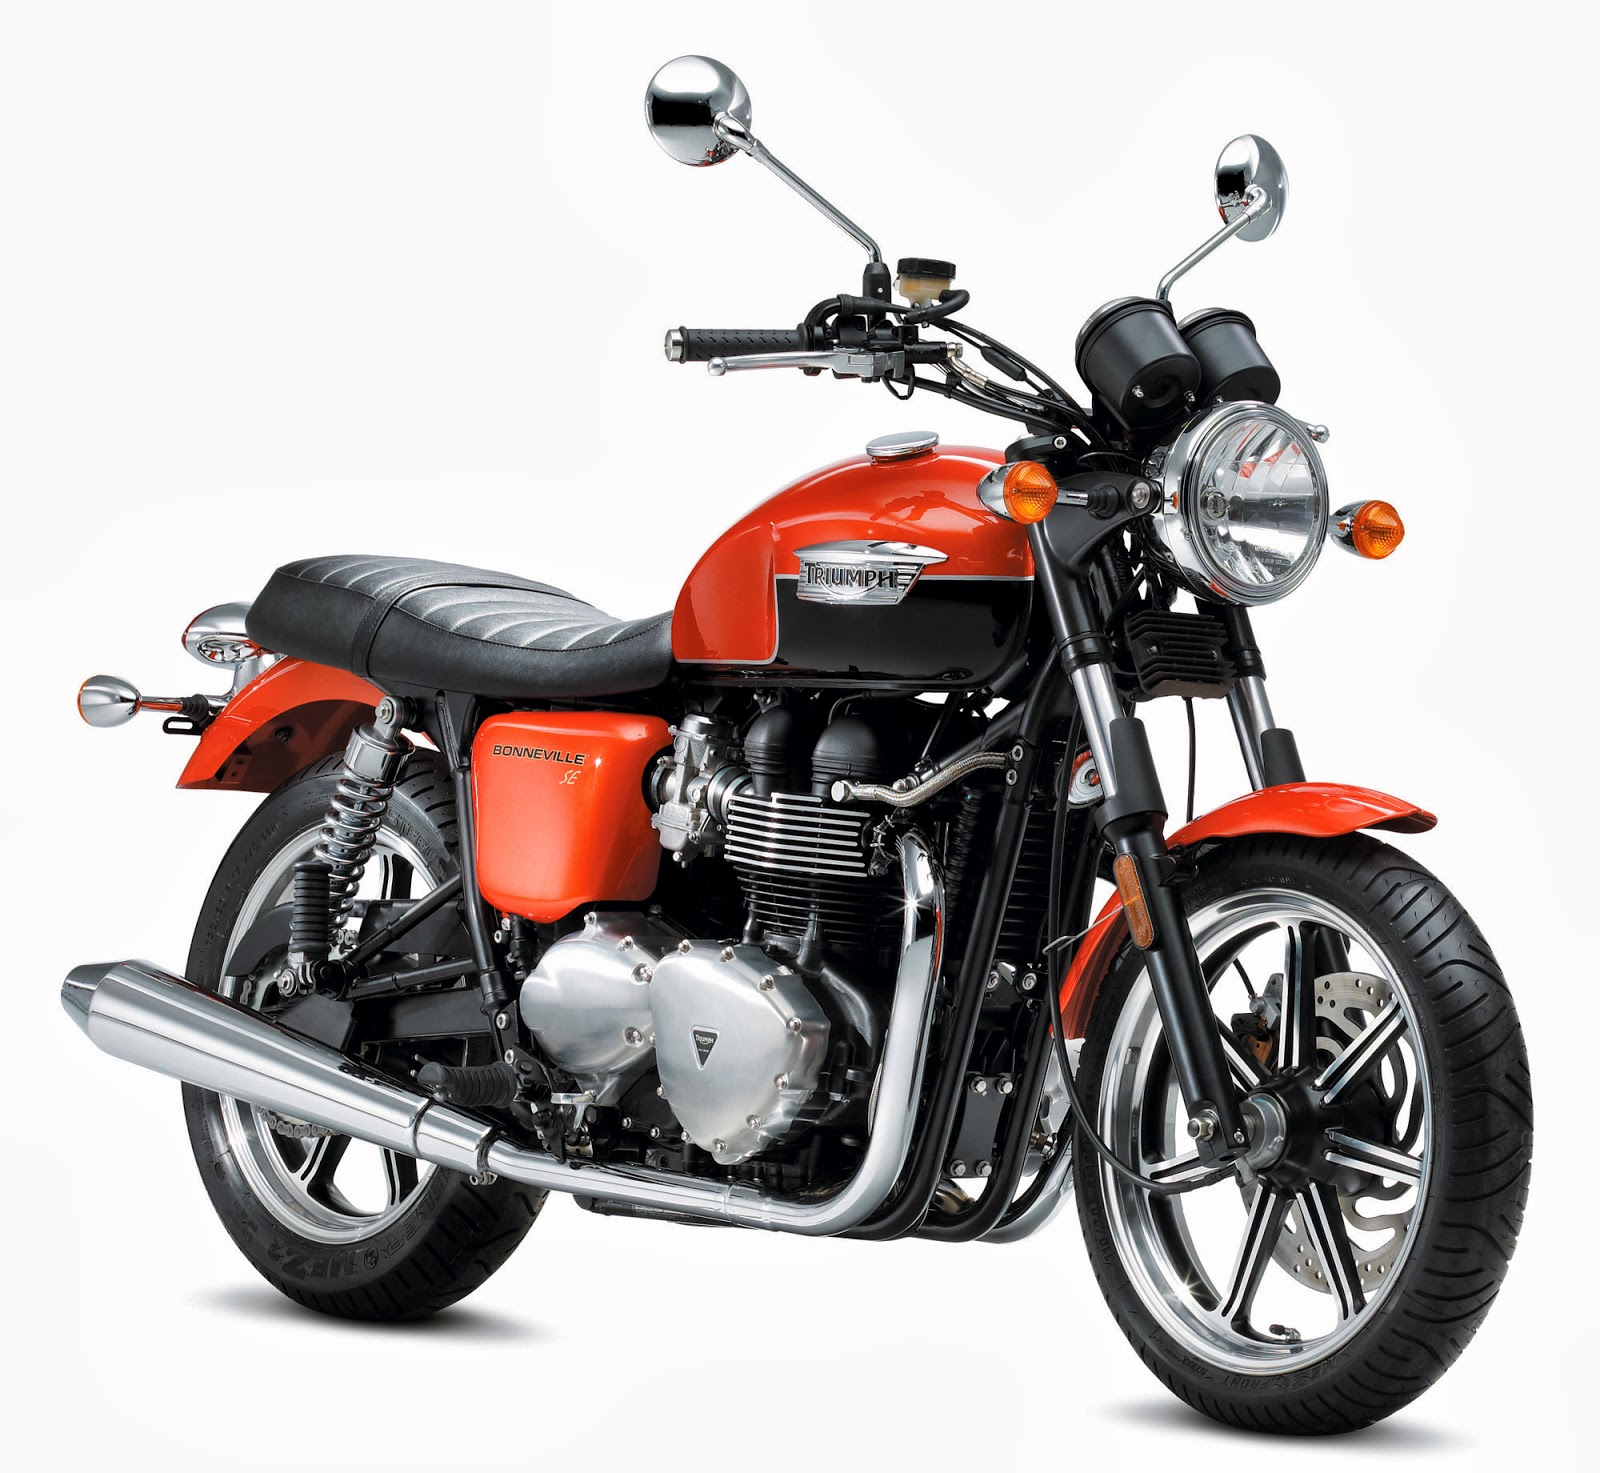 2006 Enfield 500S Continental #1